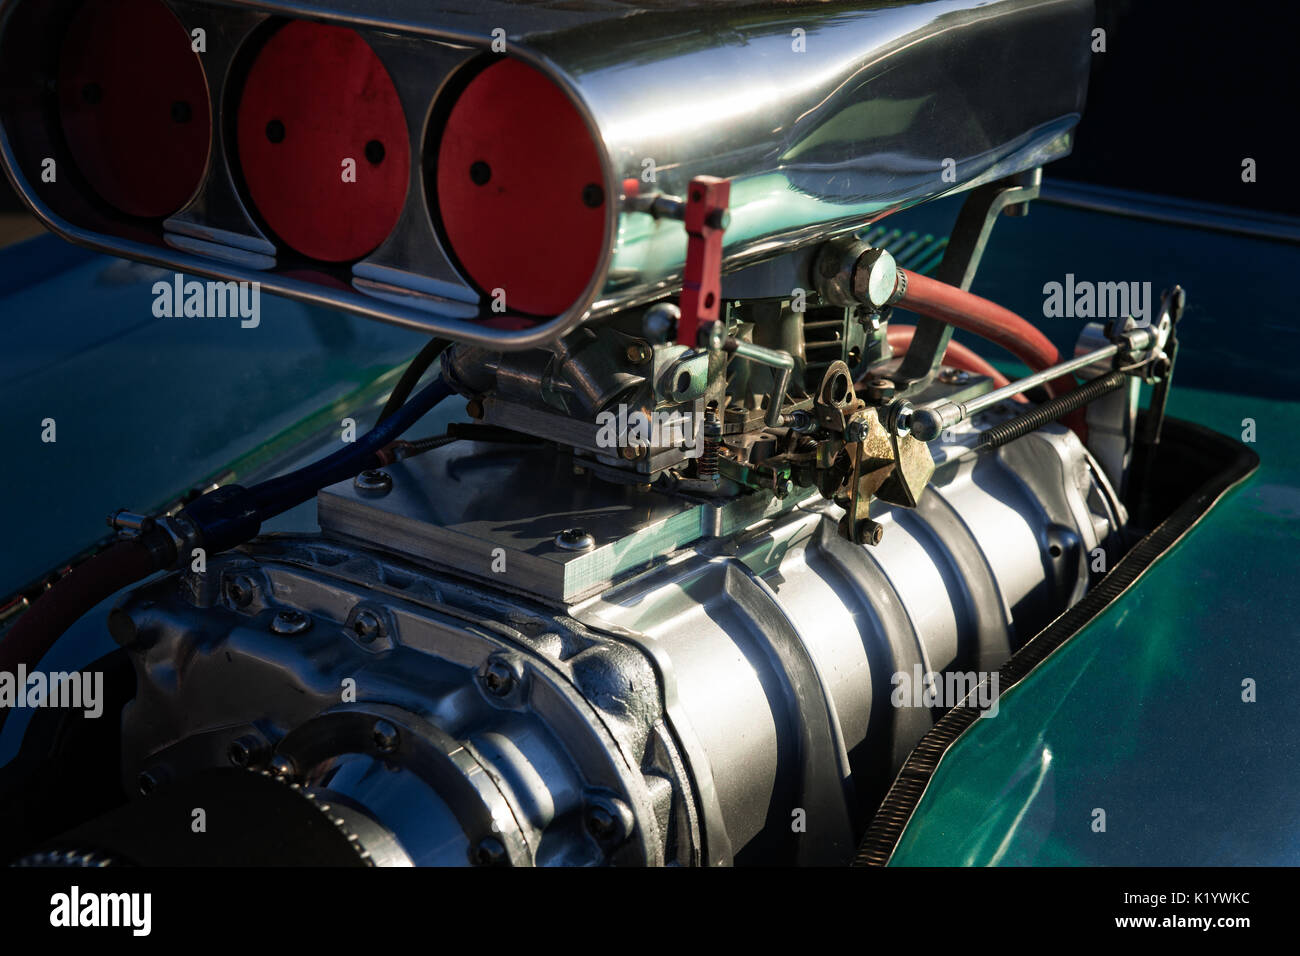 Powerful engine of a hot rod or dragster speed racing car. Metal structure of the engine over the car hood. Engineering automotive technology. - Stock Image